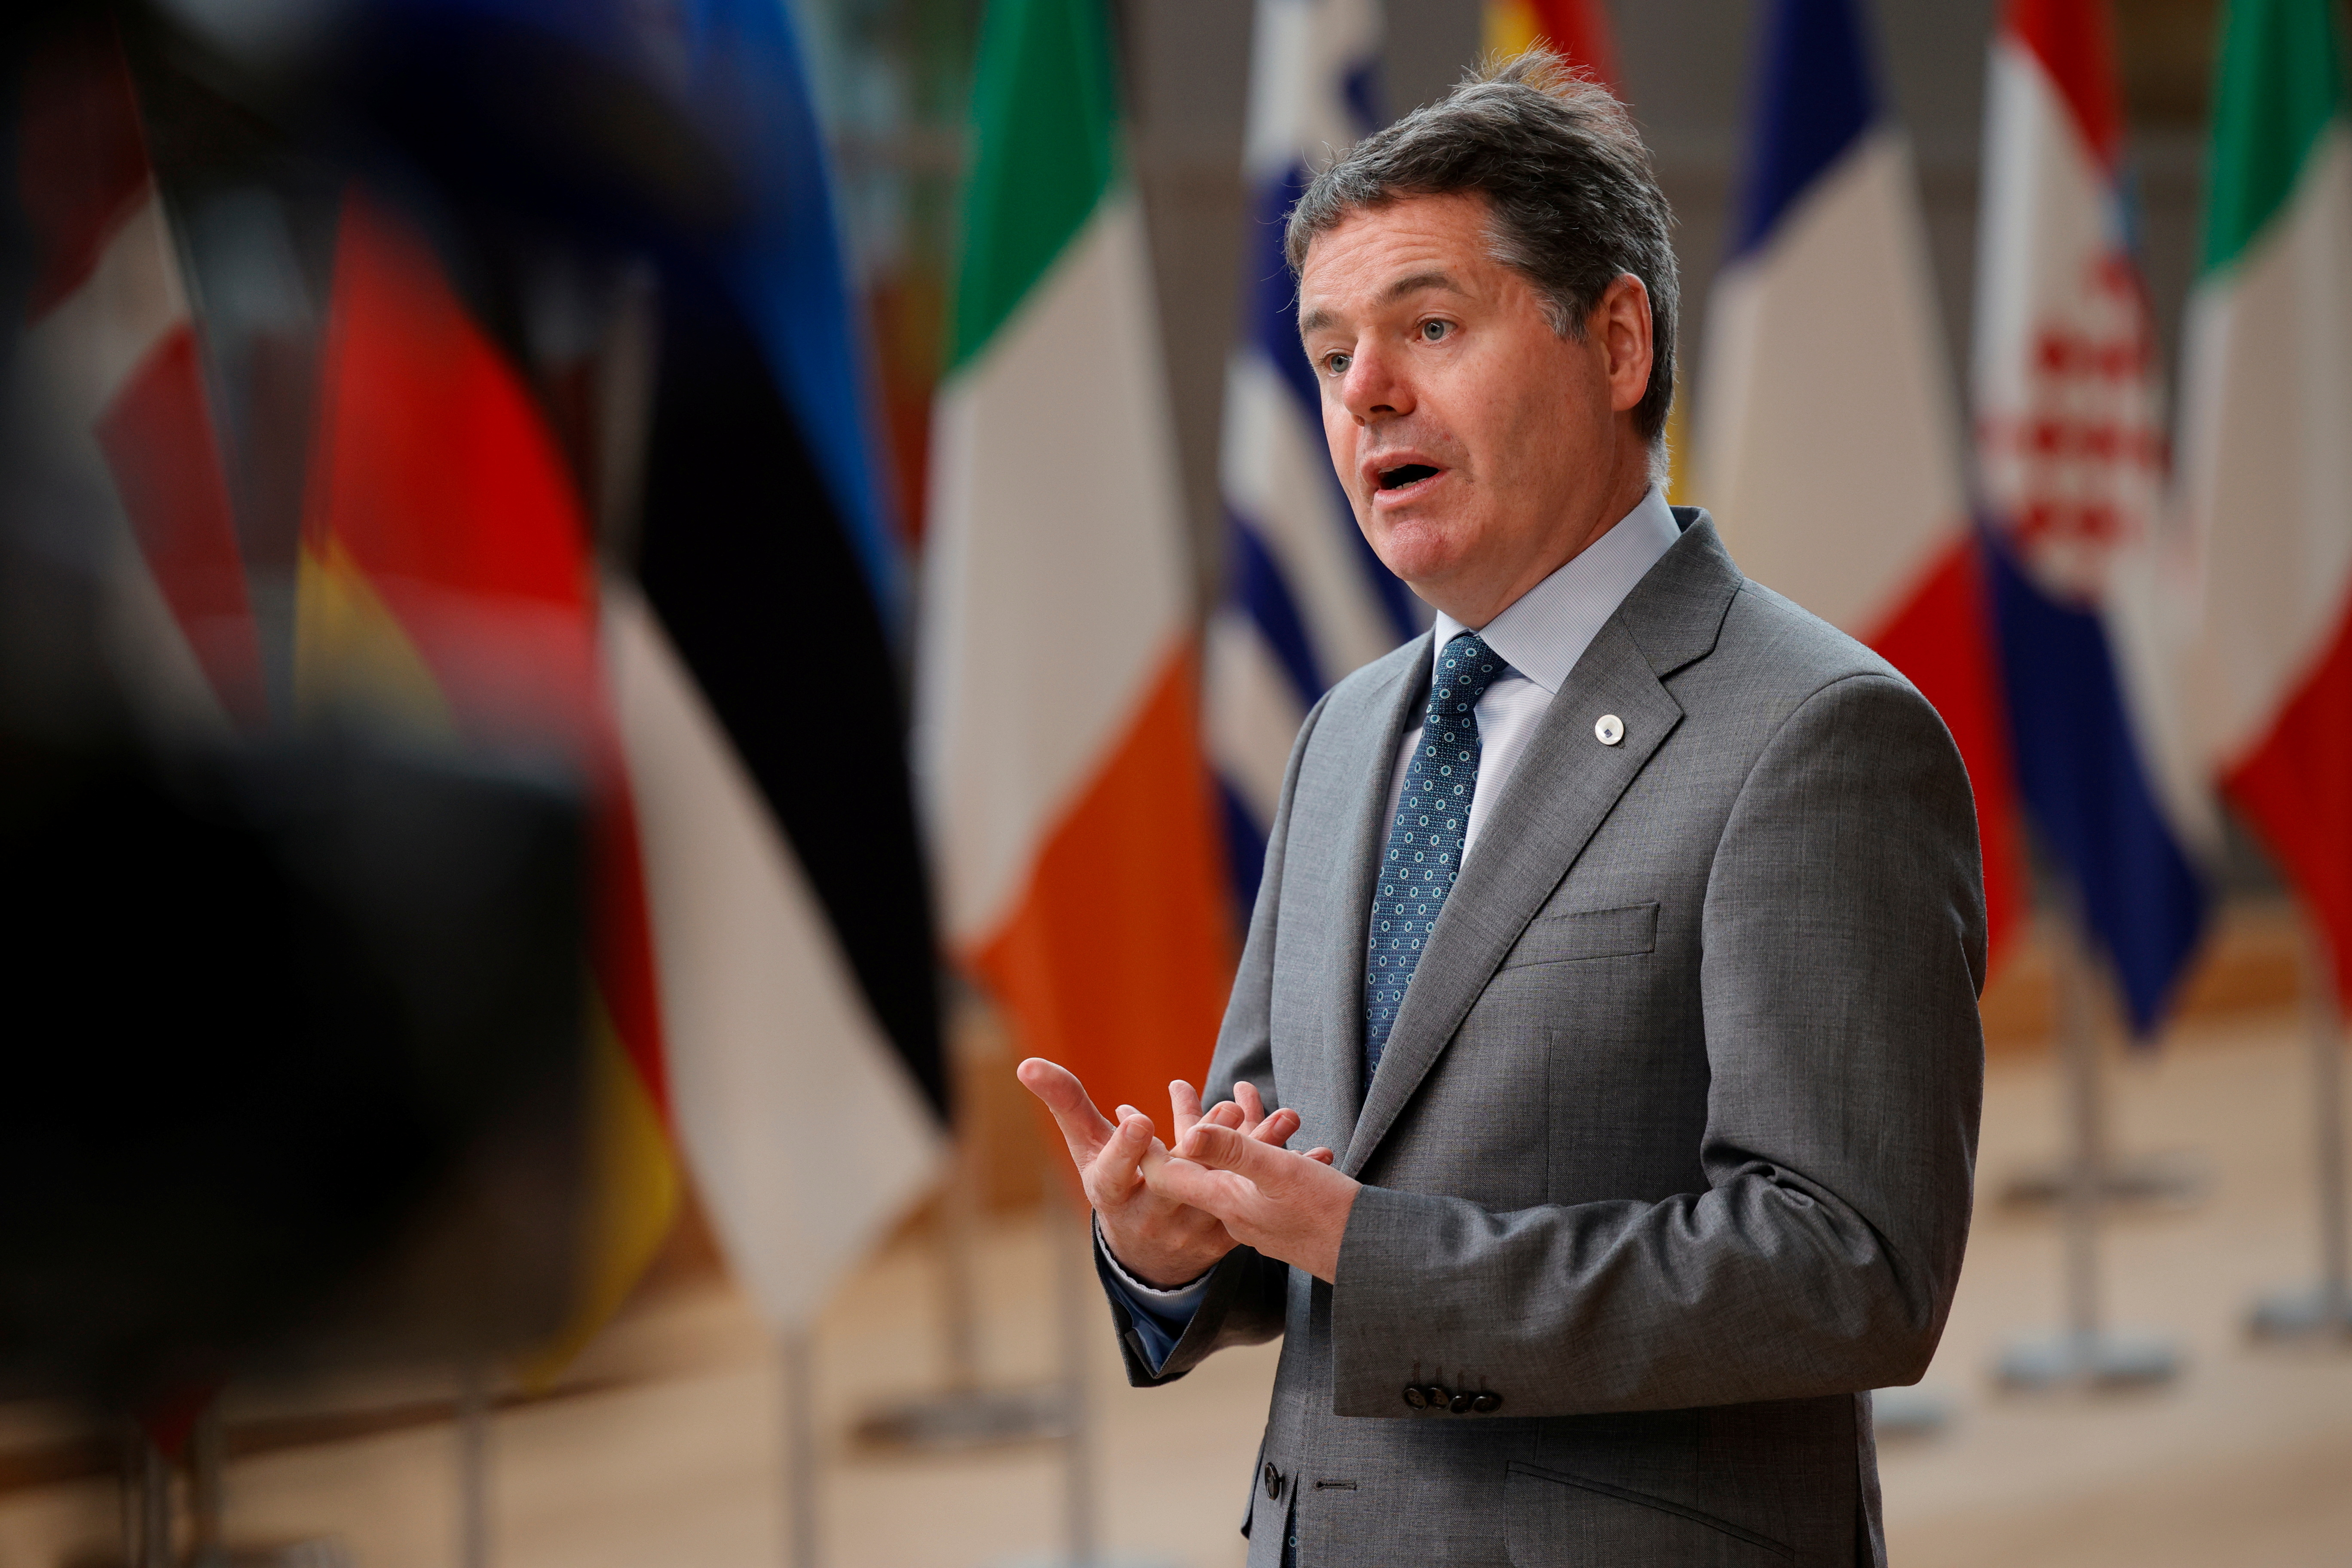 Eurogroup President Paschal Donohoe talks to journalists as he arrives for the second day of a EU summit at the European Council building in Brussels, Belgium June 25, 2021. Olivier Matthys/Pool via REUTERS